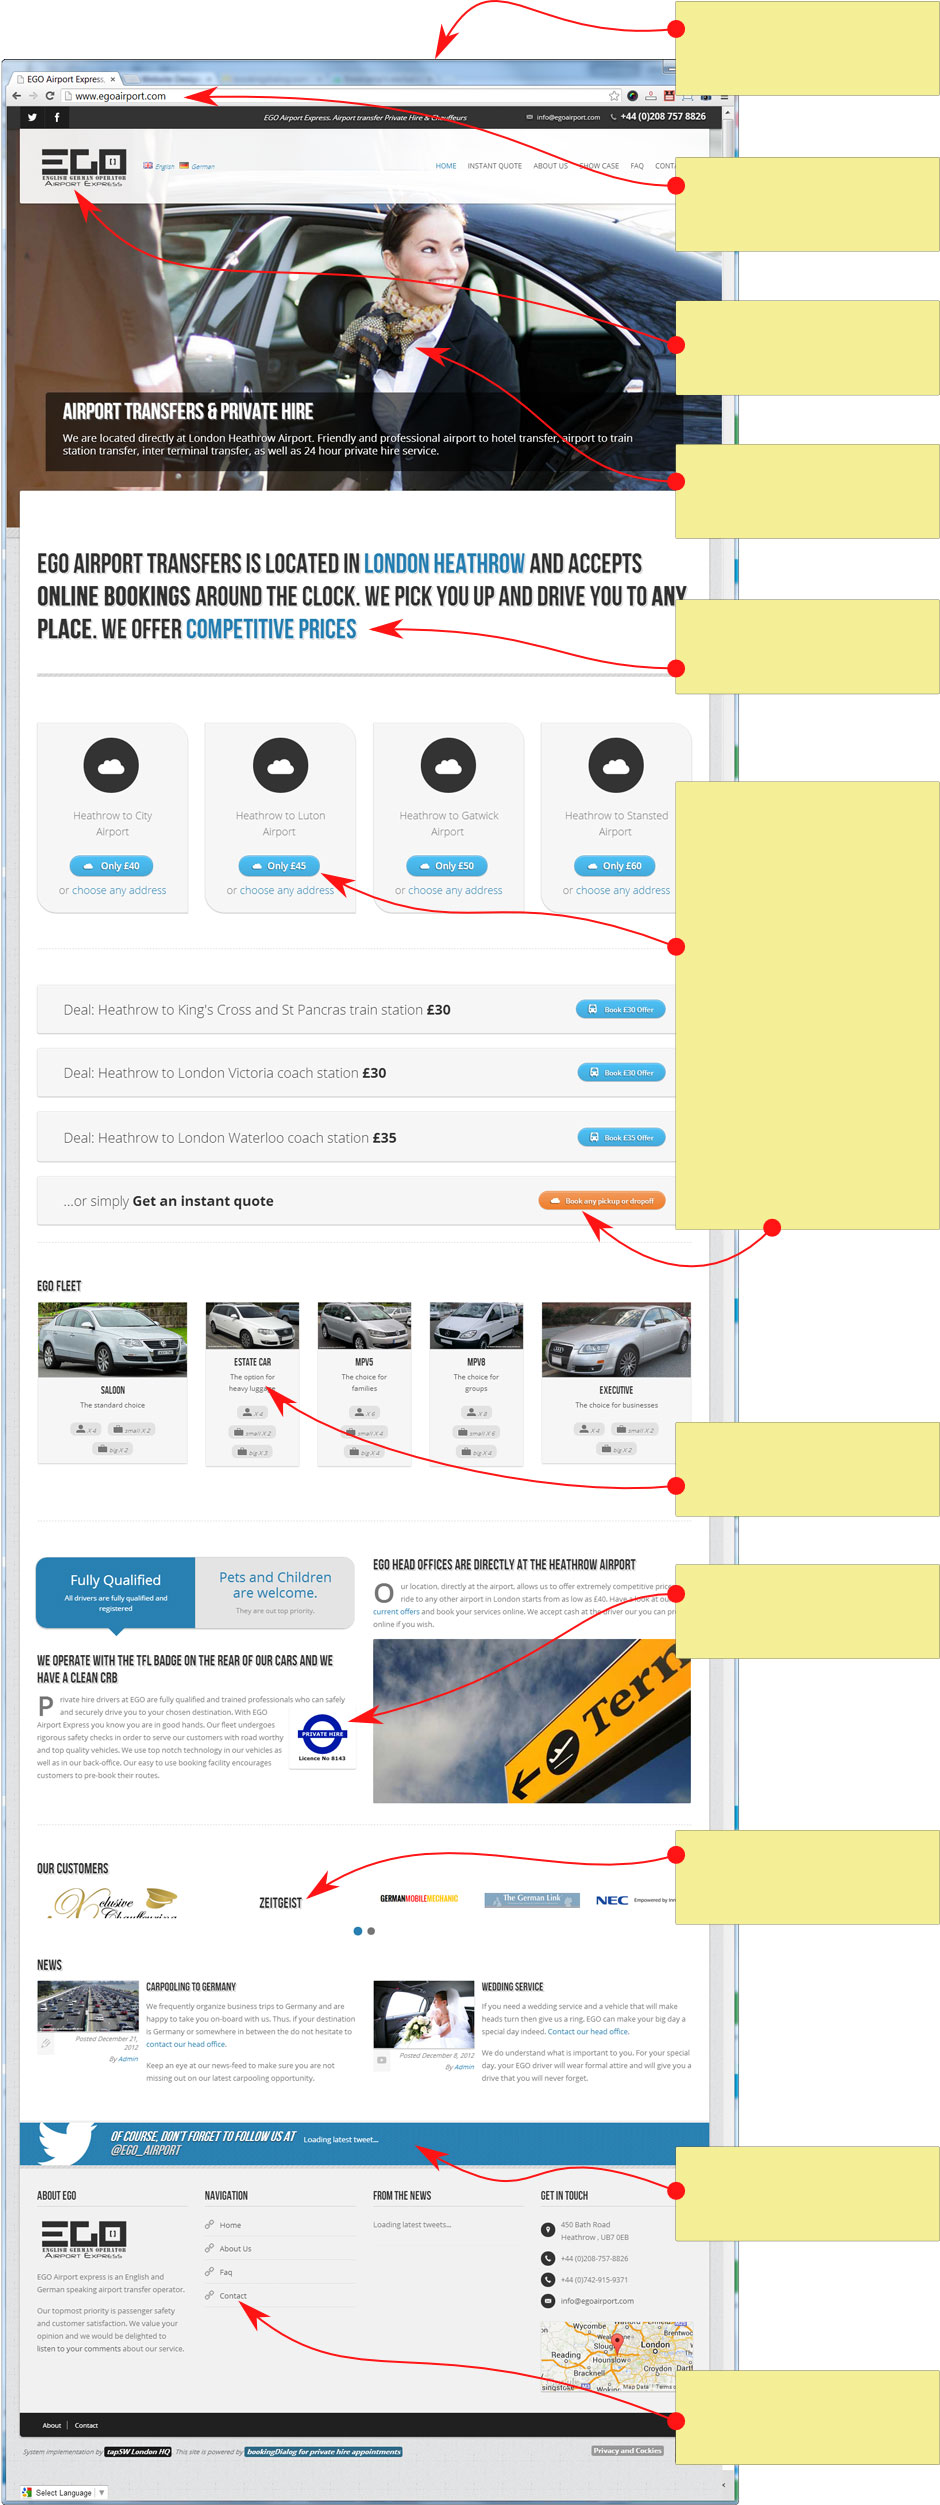 A full page screenshot of a custom taxi website design. It shows the webpage and layered on top of it, information boxes that hold text for what is included in the bespoke design.